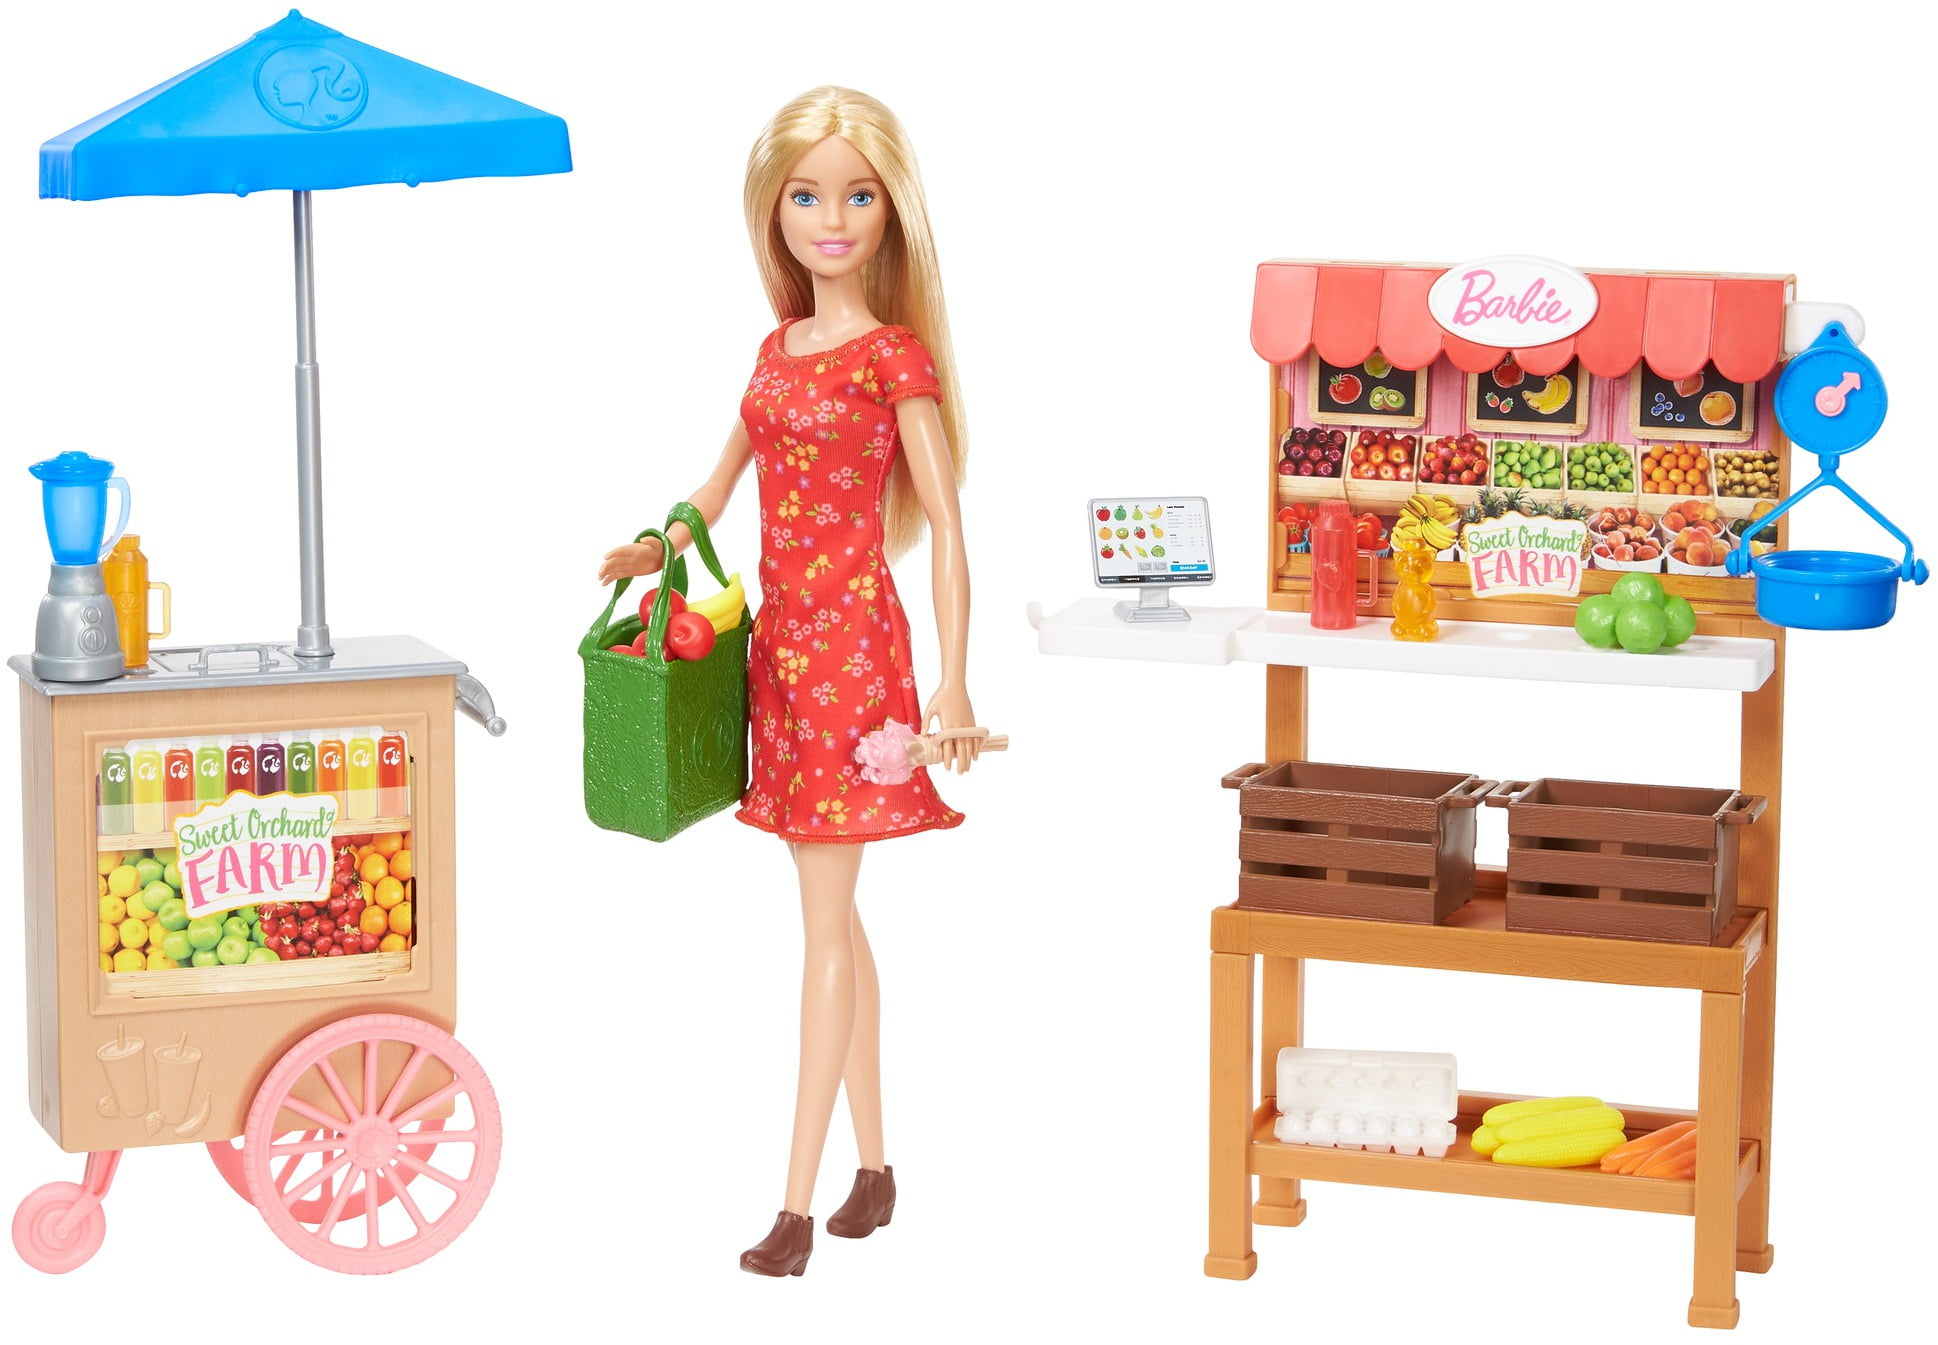 BRAND NEW Kids Barbie Sweet Orchard Farm Doll /& Pickup Truck with Accessories